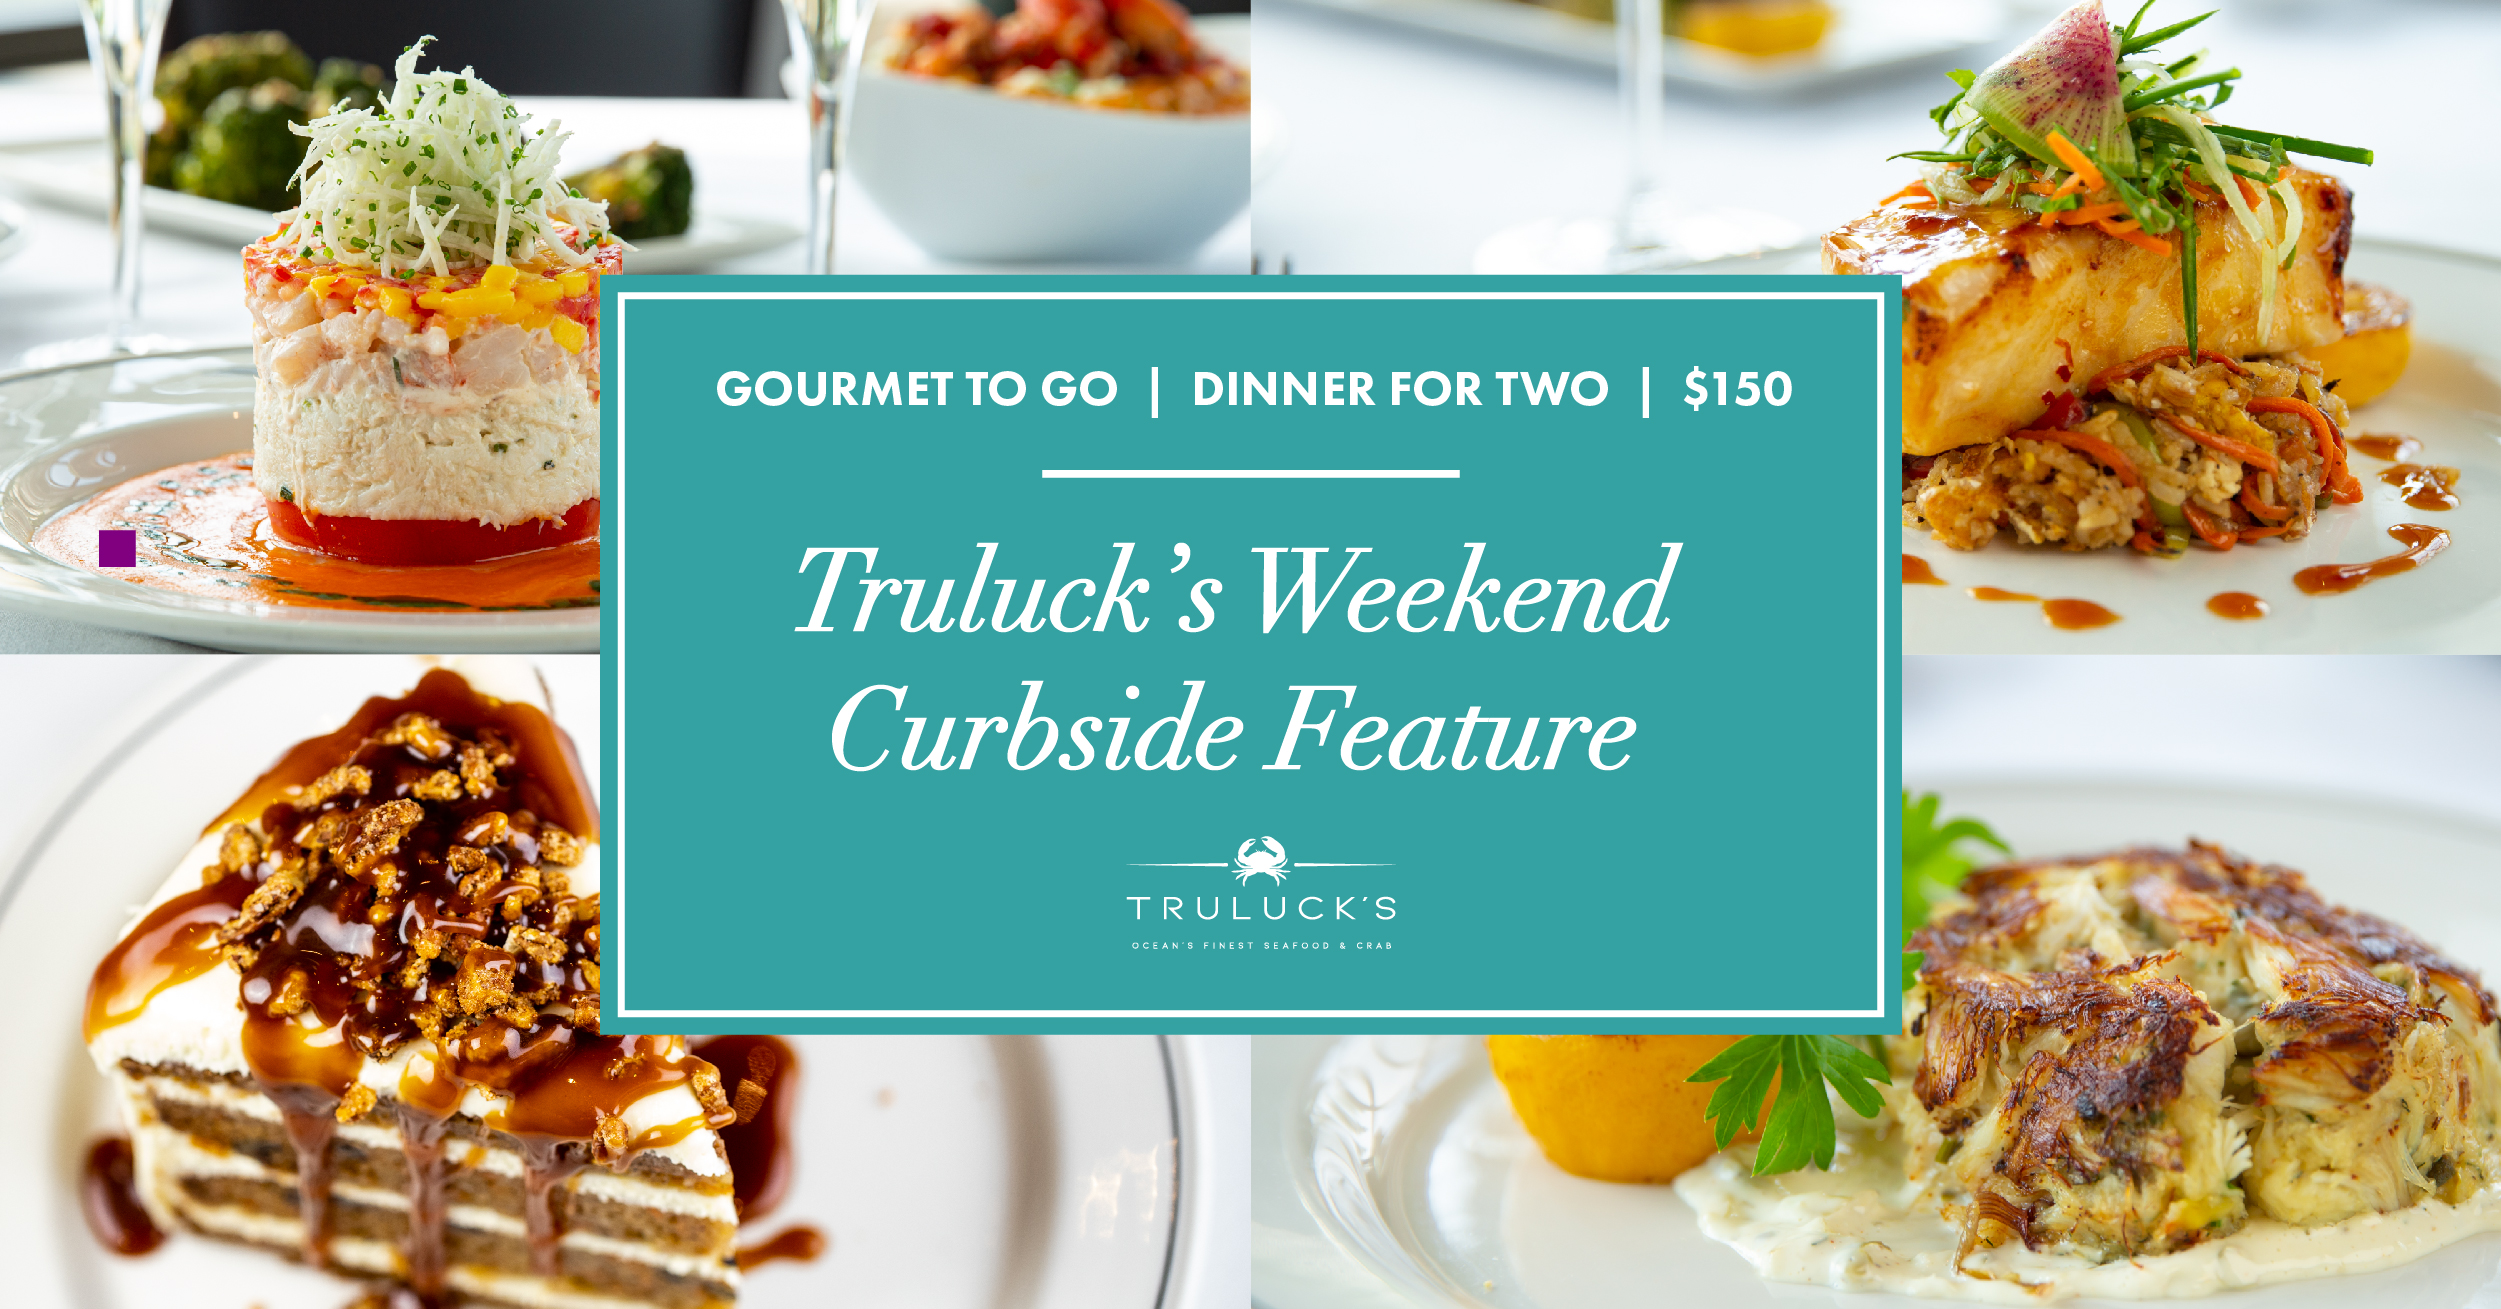 Austin Weekend Curbside March 5 & 6th offering including crab and shrimp Napoleon, Miso glazed seabass, carrot cake and jumbo lump crab cake,